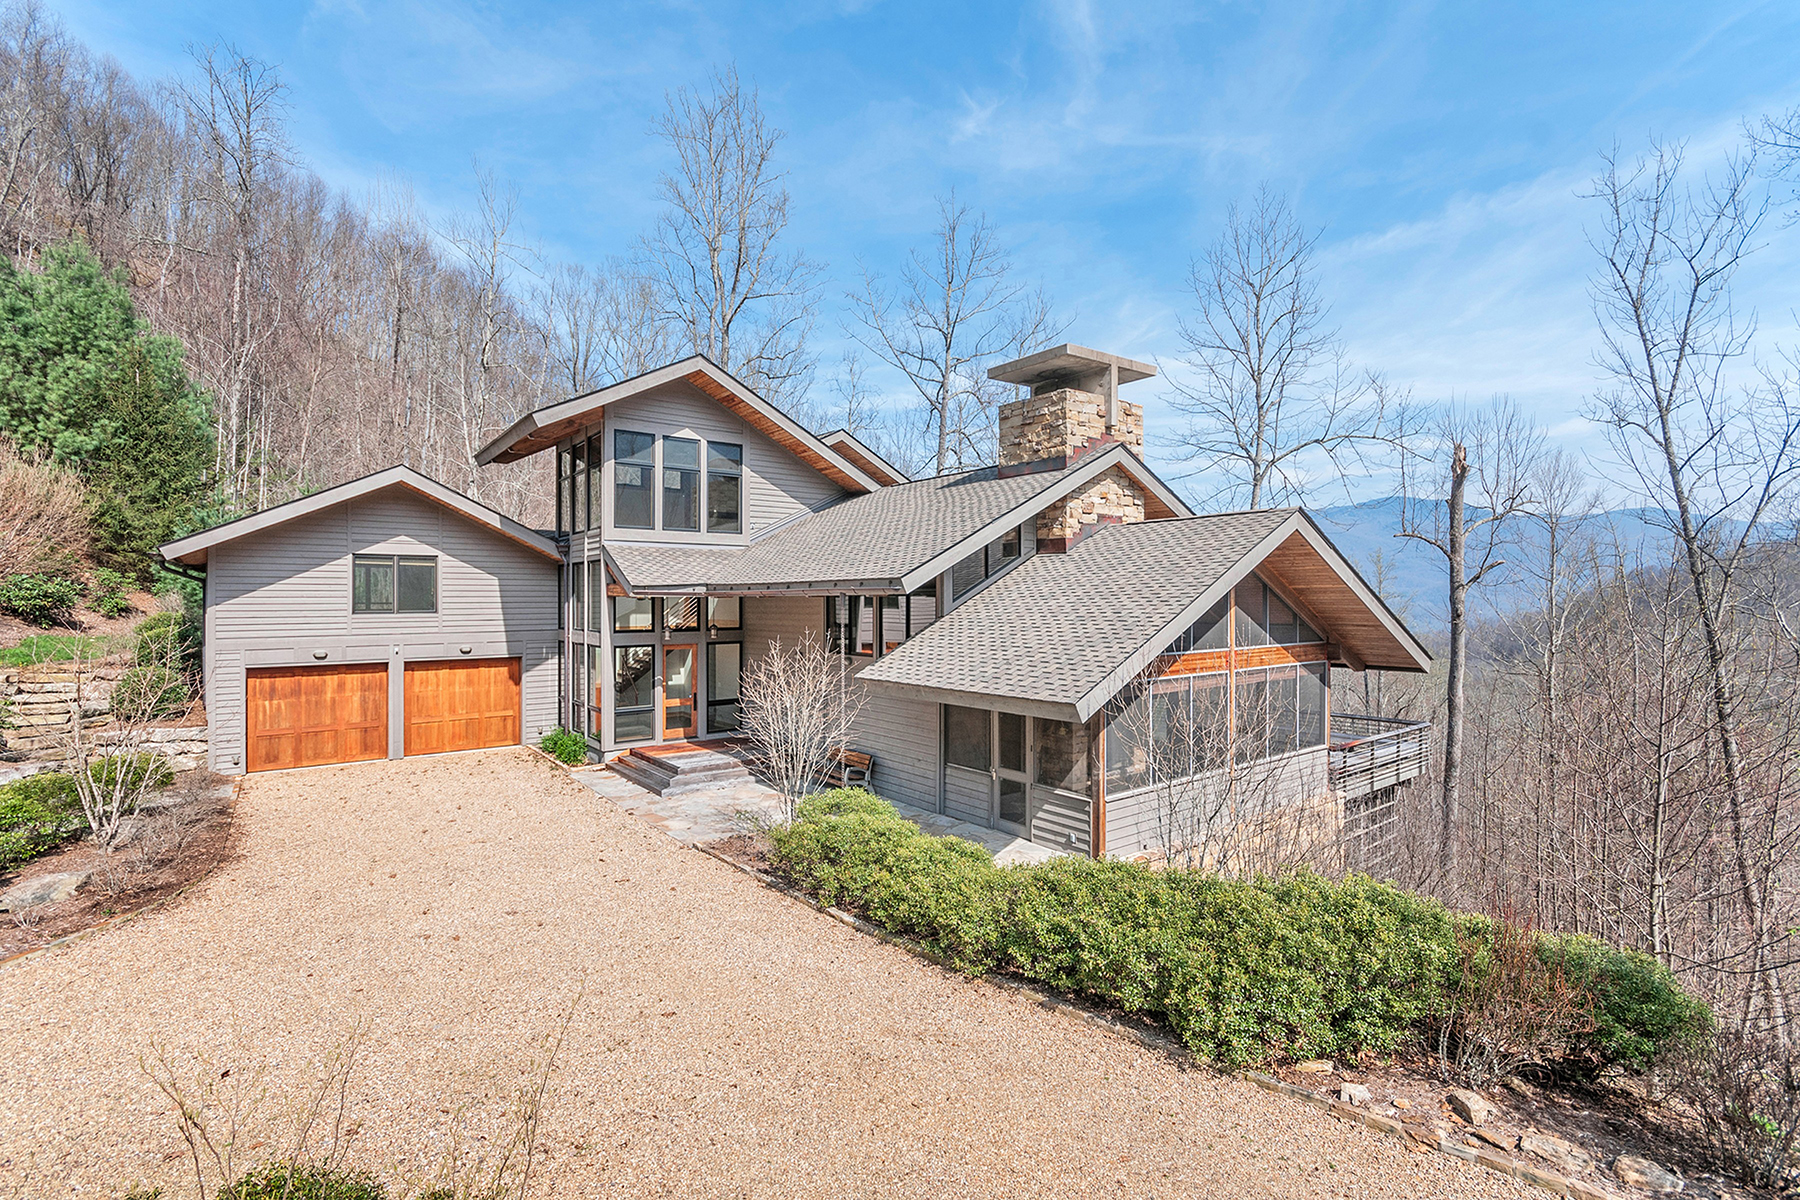 Single Family Homes for Active at BALSAM MOUNTAIN PRESERVE 51 Gin Pole Way Sylva, North Carolina 28779 United States